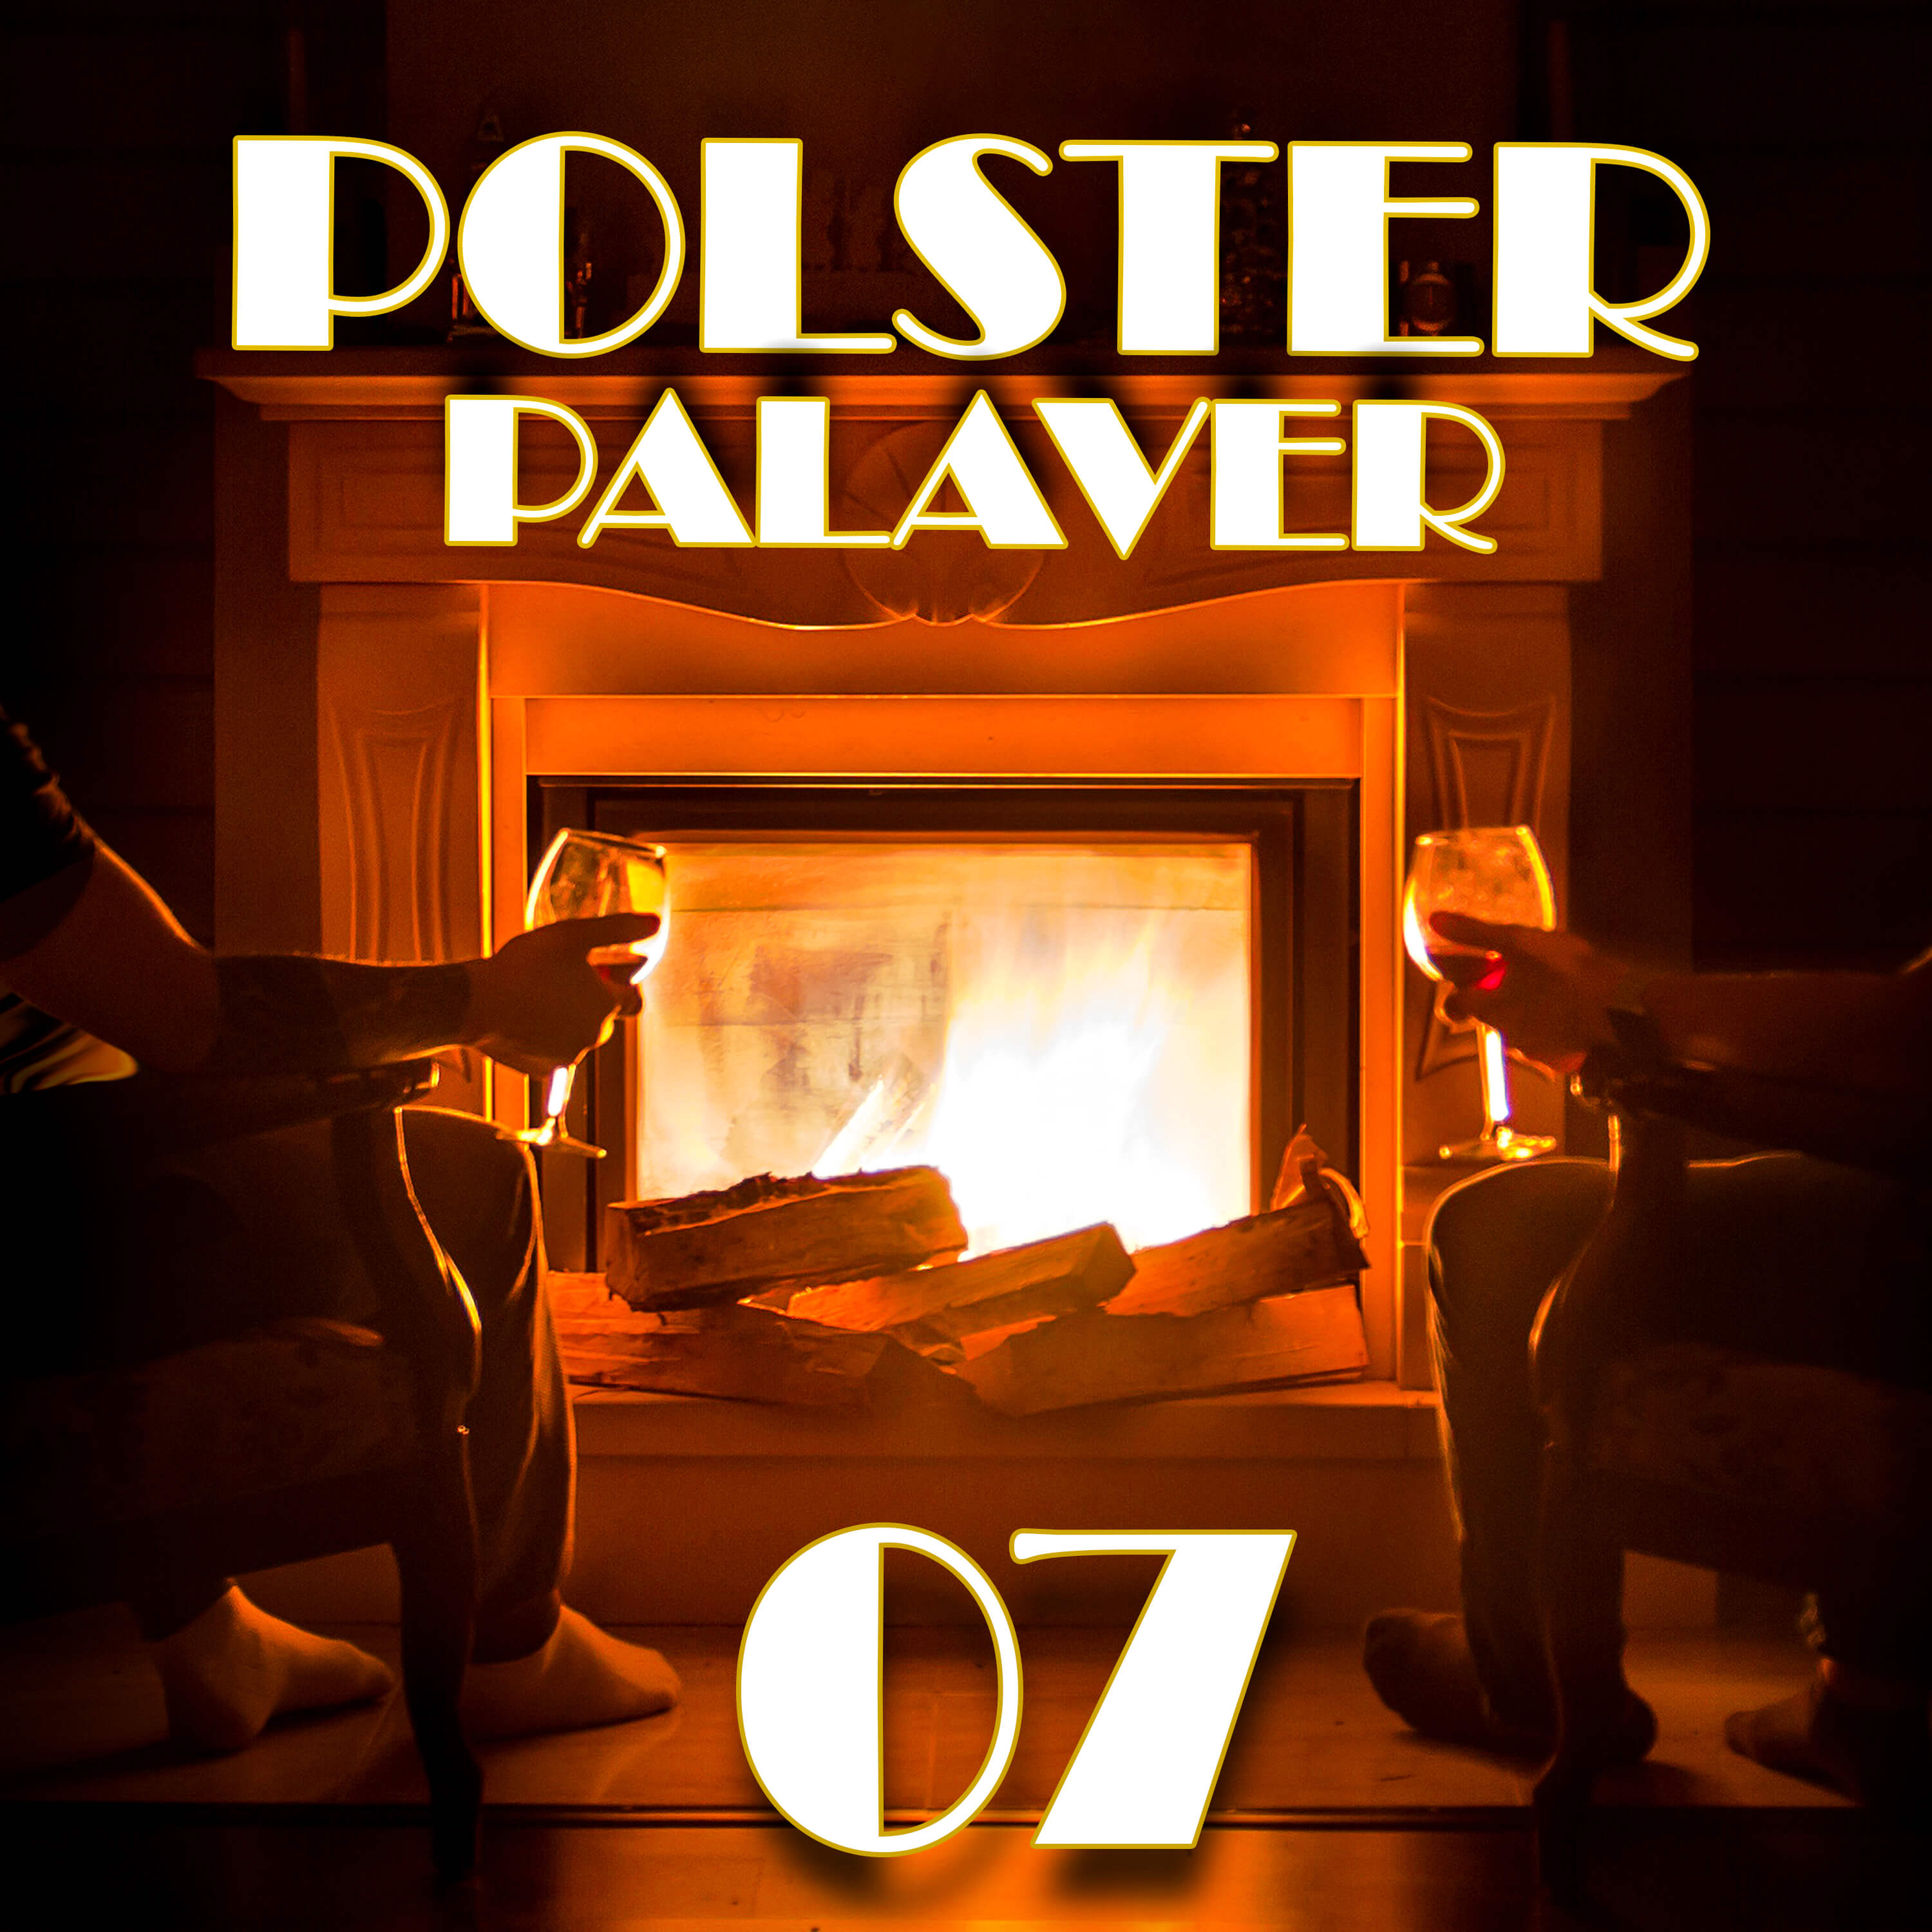 Polster Palaver Cover 07 Compressed